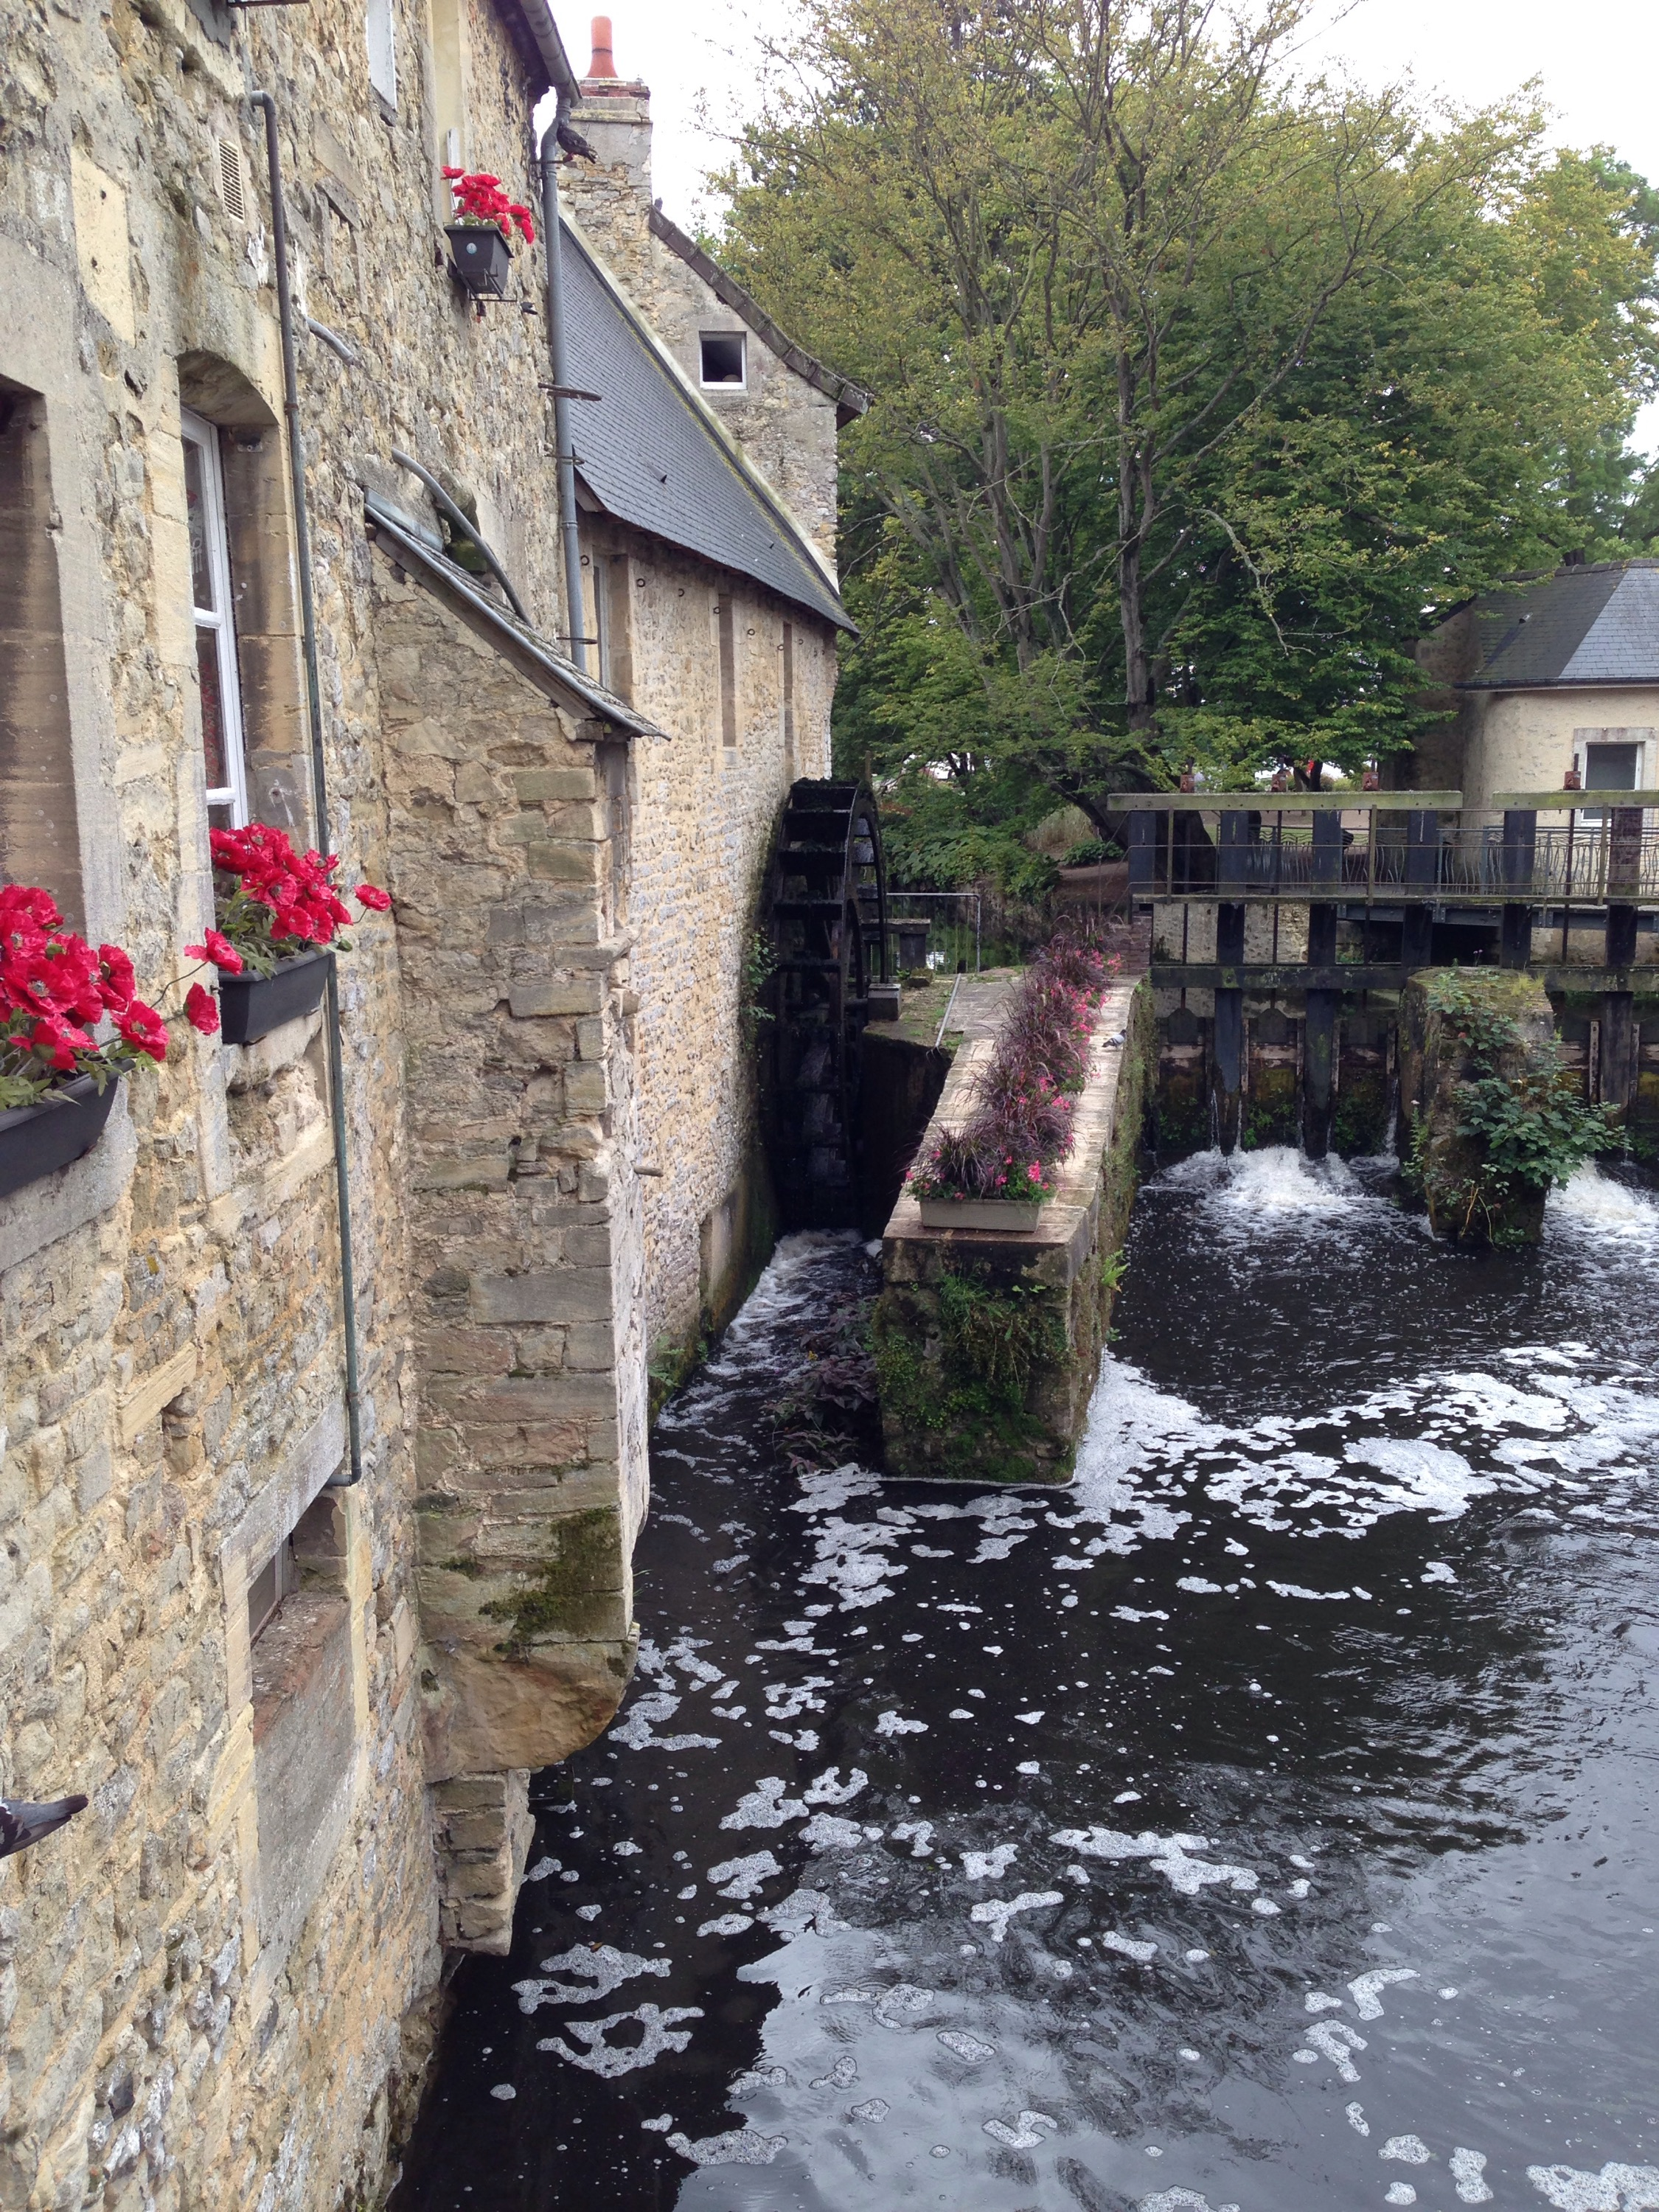 bayeux  water wheel lower normandy france days put with a toddler